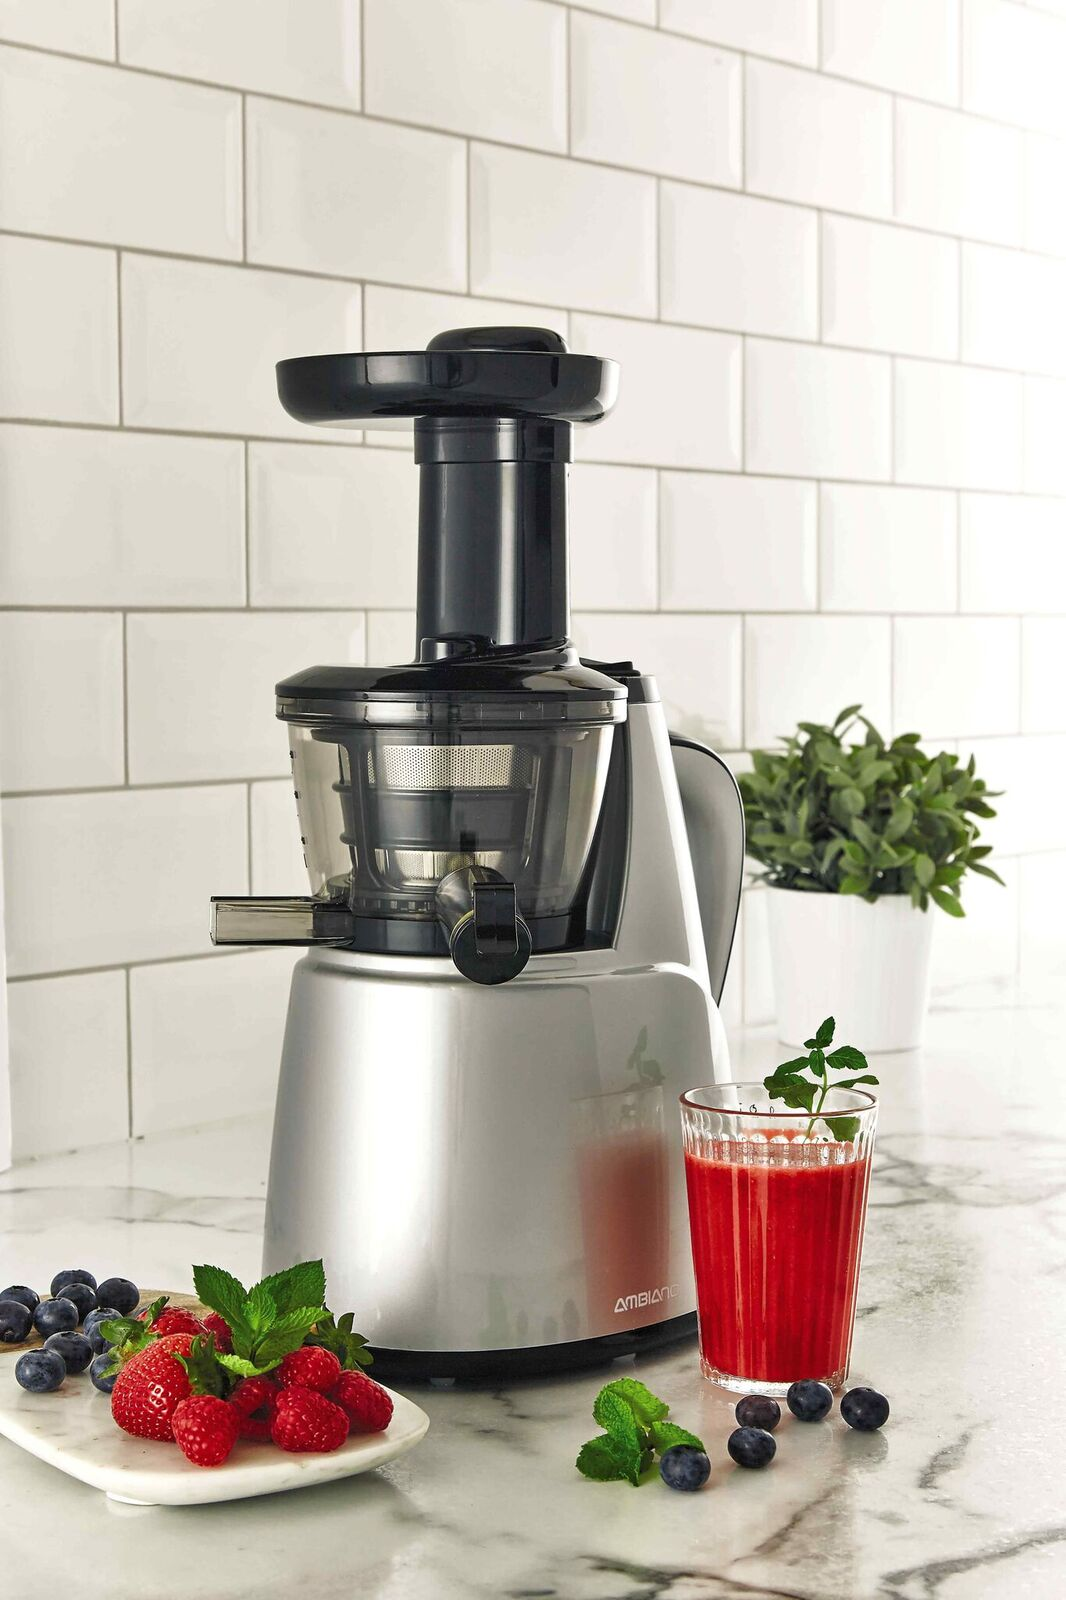 Review Of Aldi Slow Juicer : Aldi has some great household items coming soon Her.ie